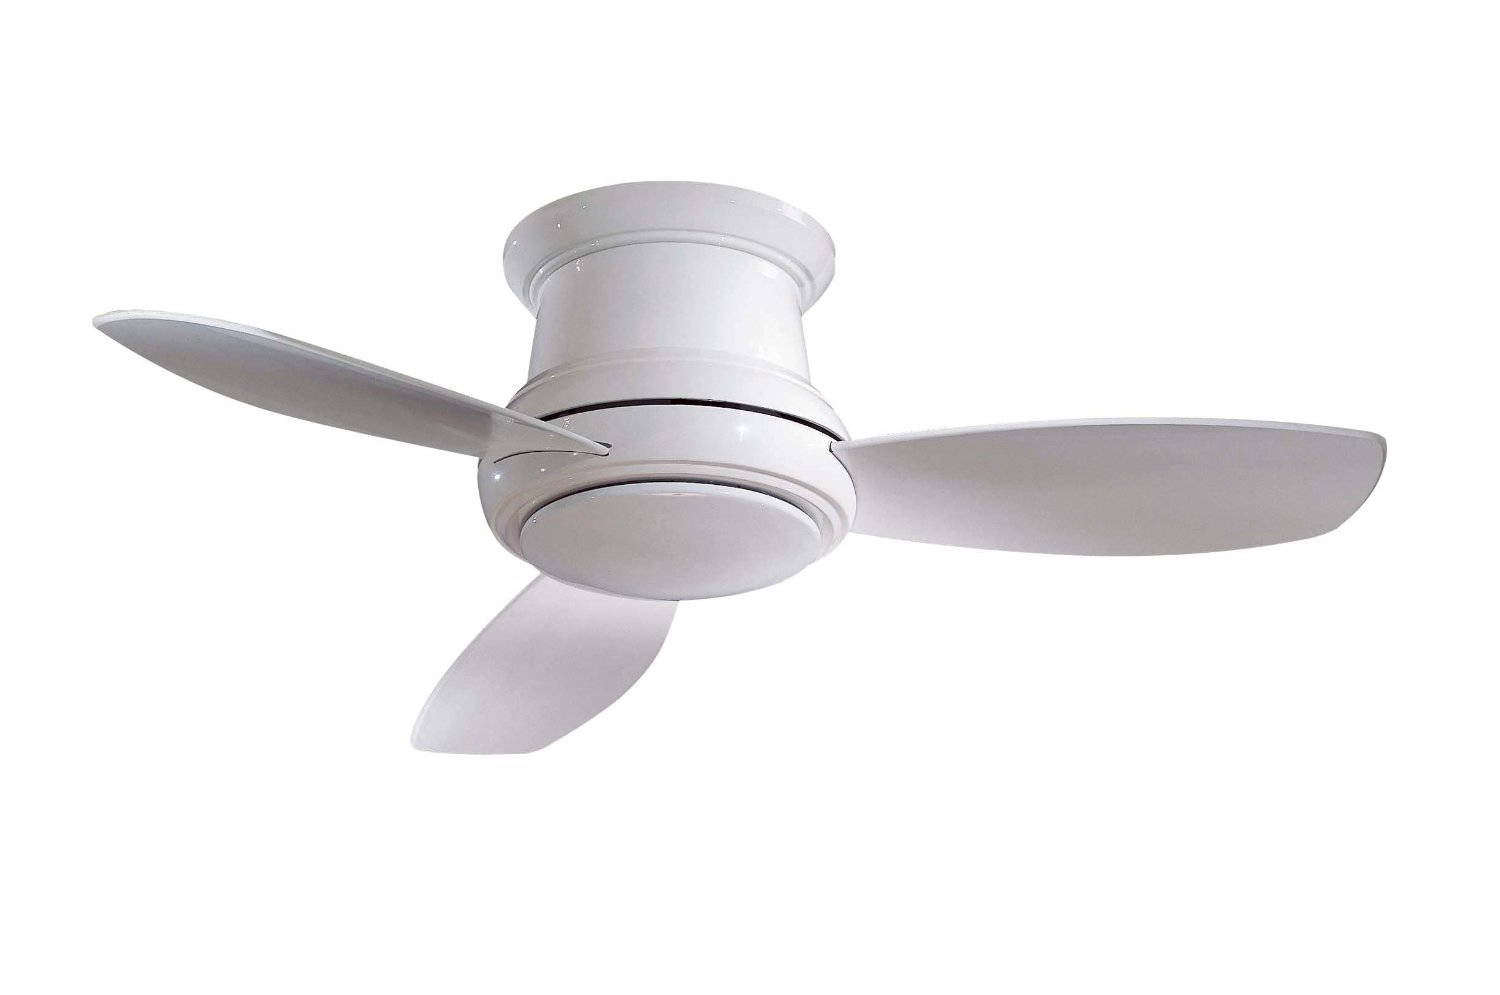 Small Lighted Ceiling Fans 10 Benefits Of Small Kitchen Ceiling Fans Warisan Lighting